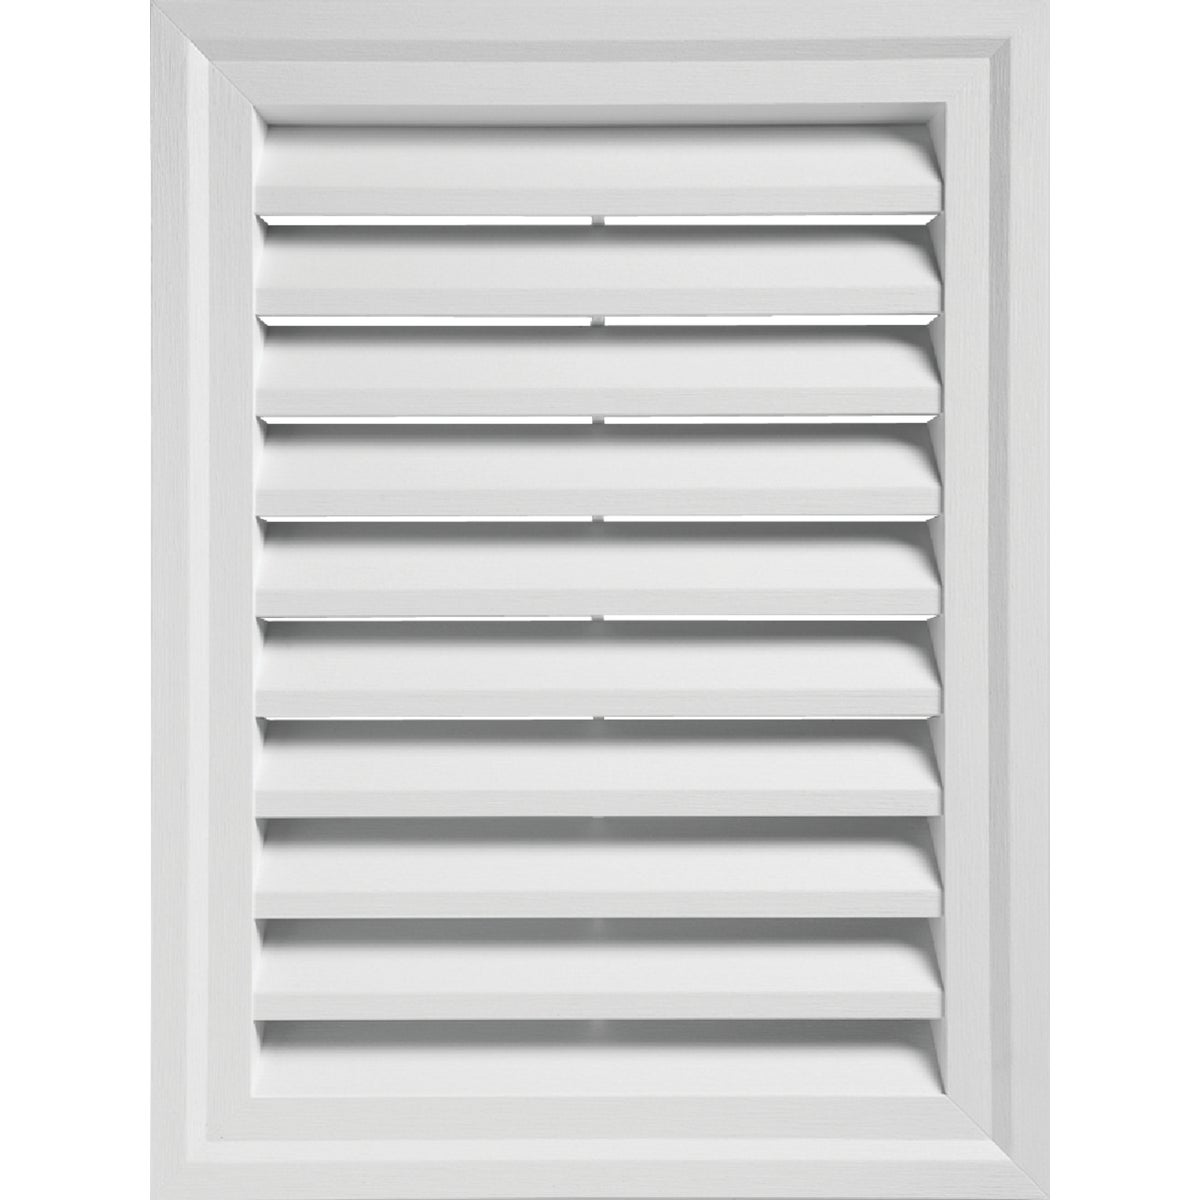 WHITE RECTGLE GABLE VENT - RECTGV2430 PW by Alcoa Home Exteriors